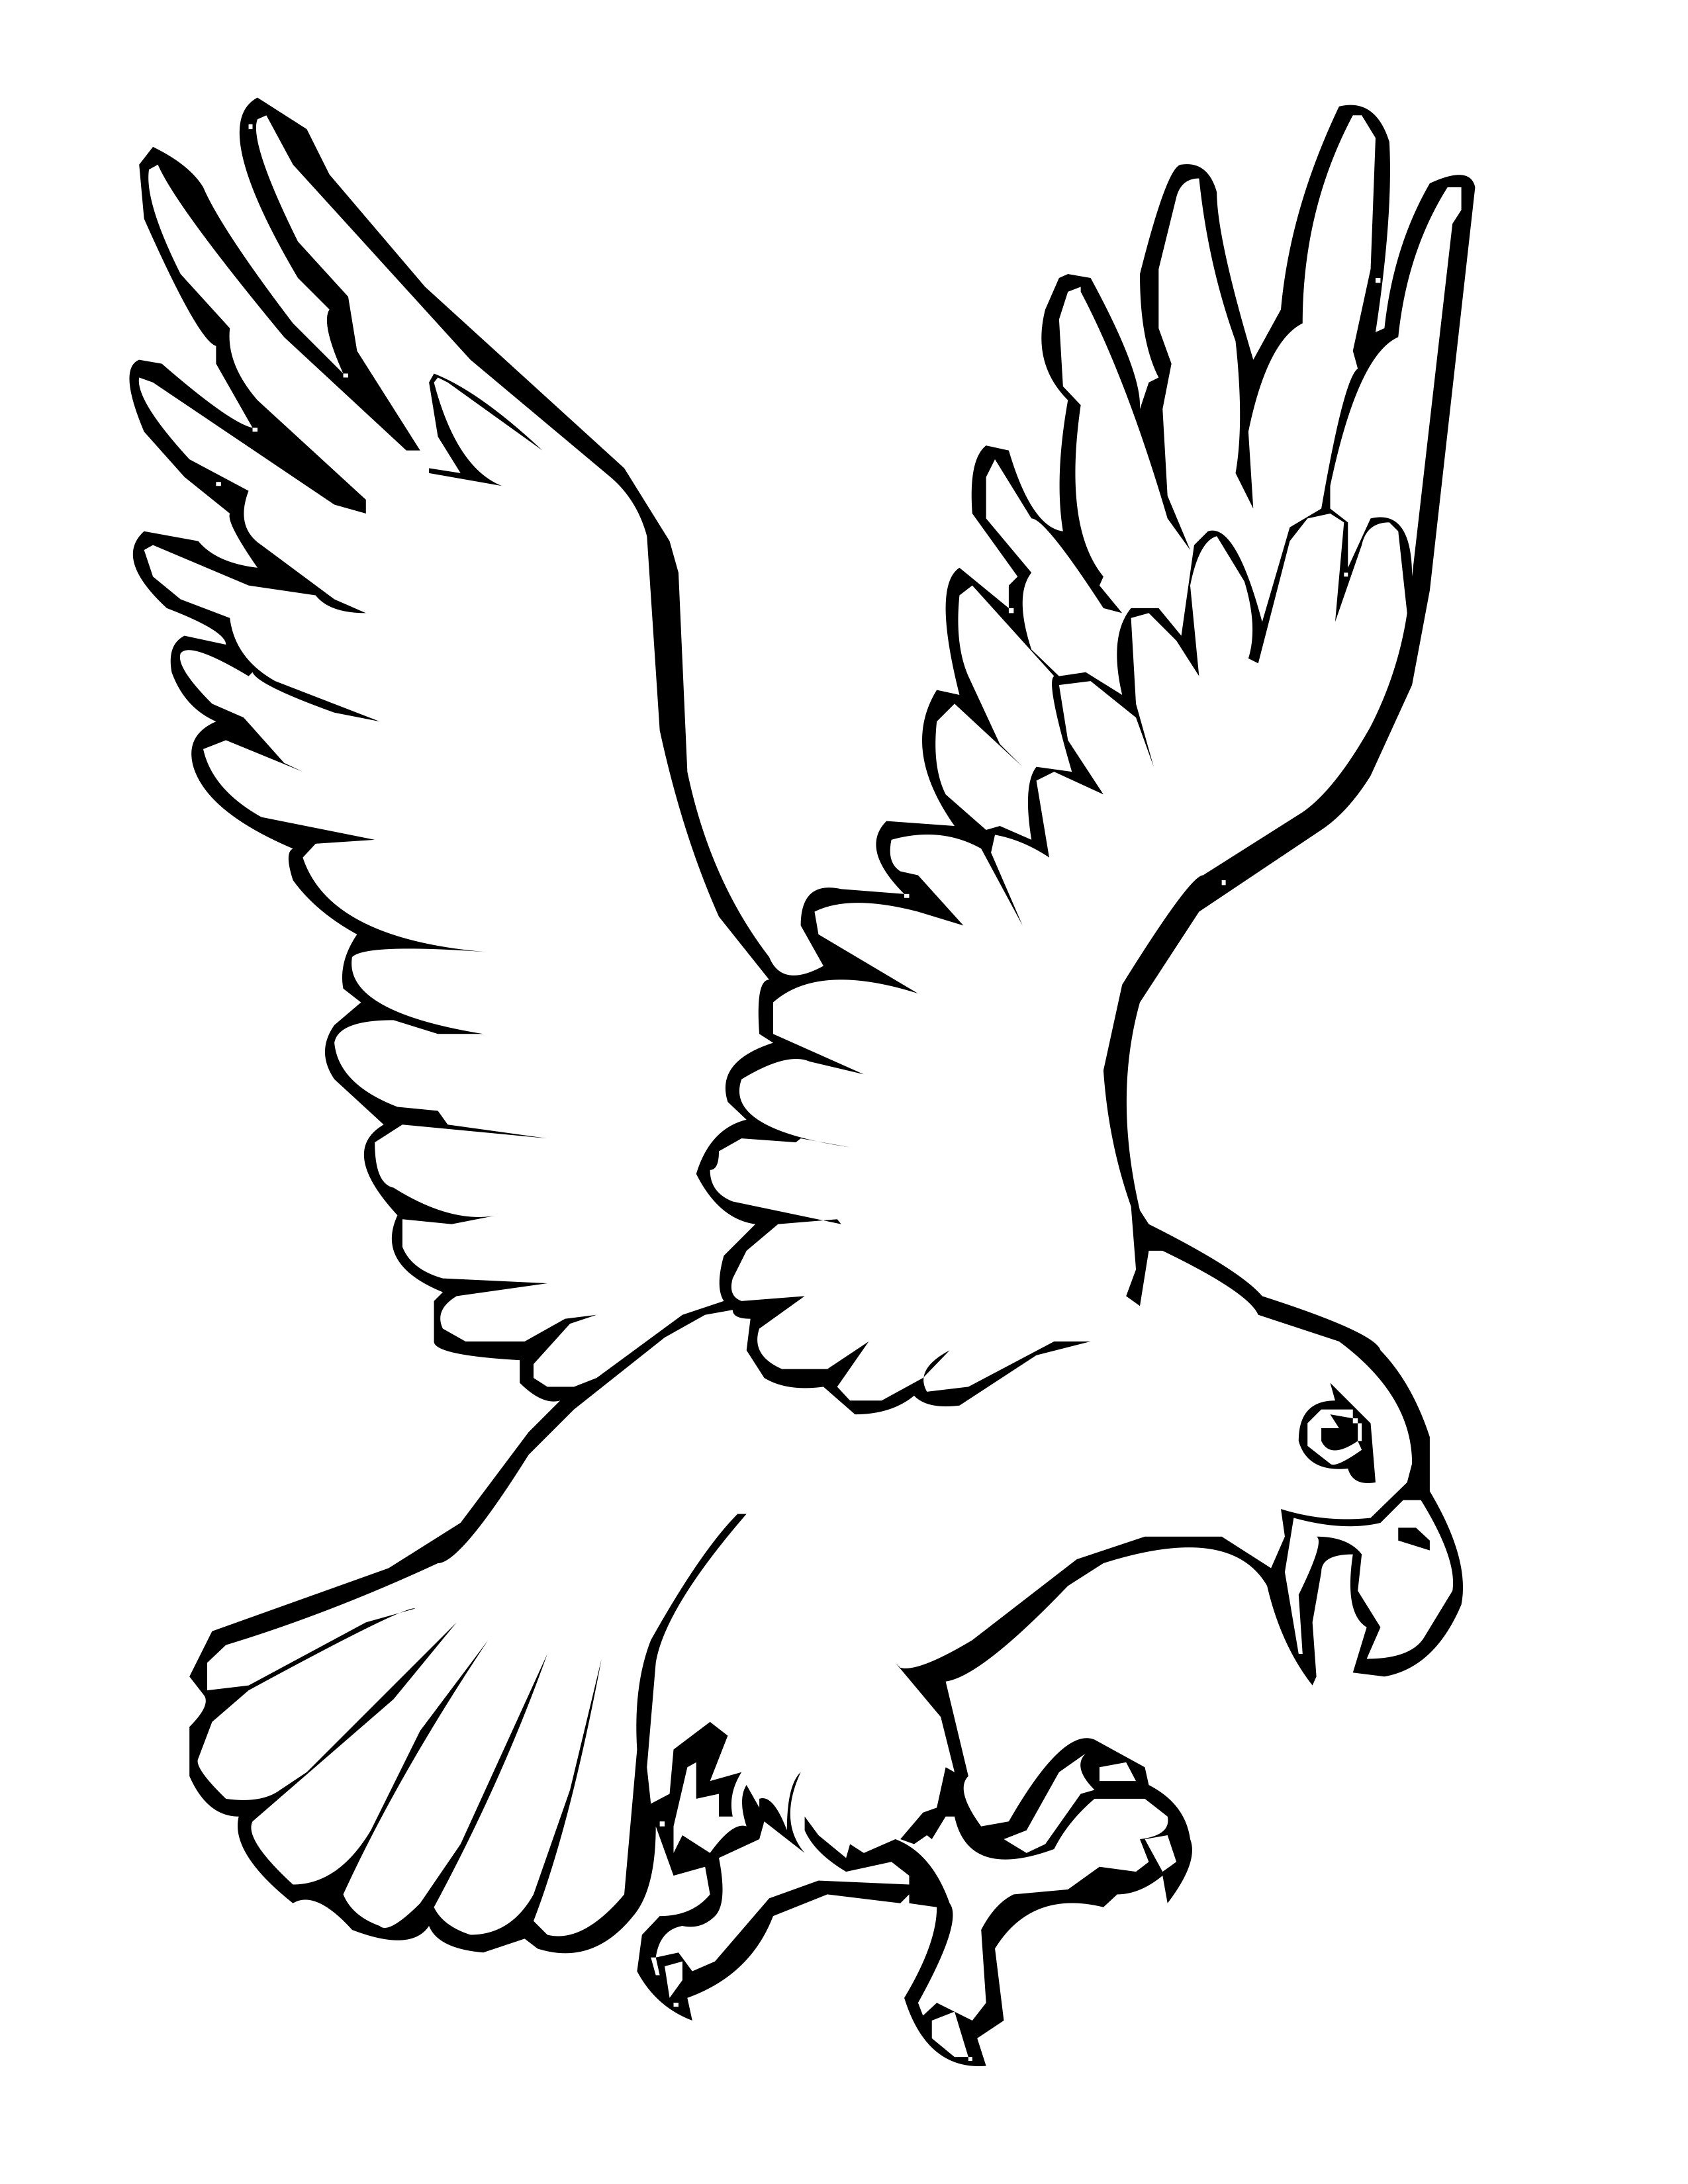 printable images of birds bird coloring pages printable of images birds